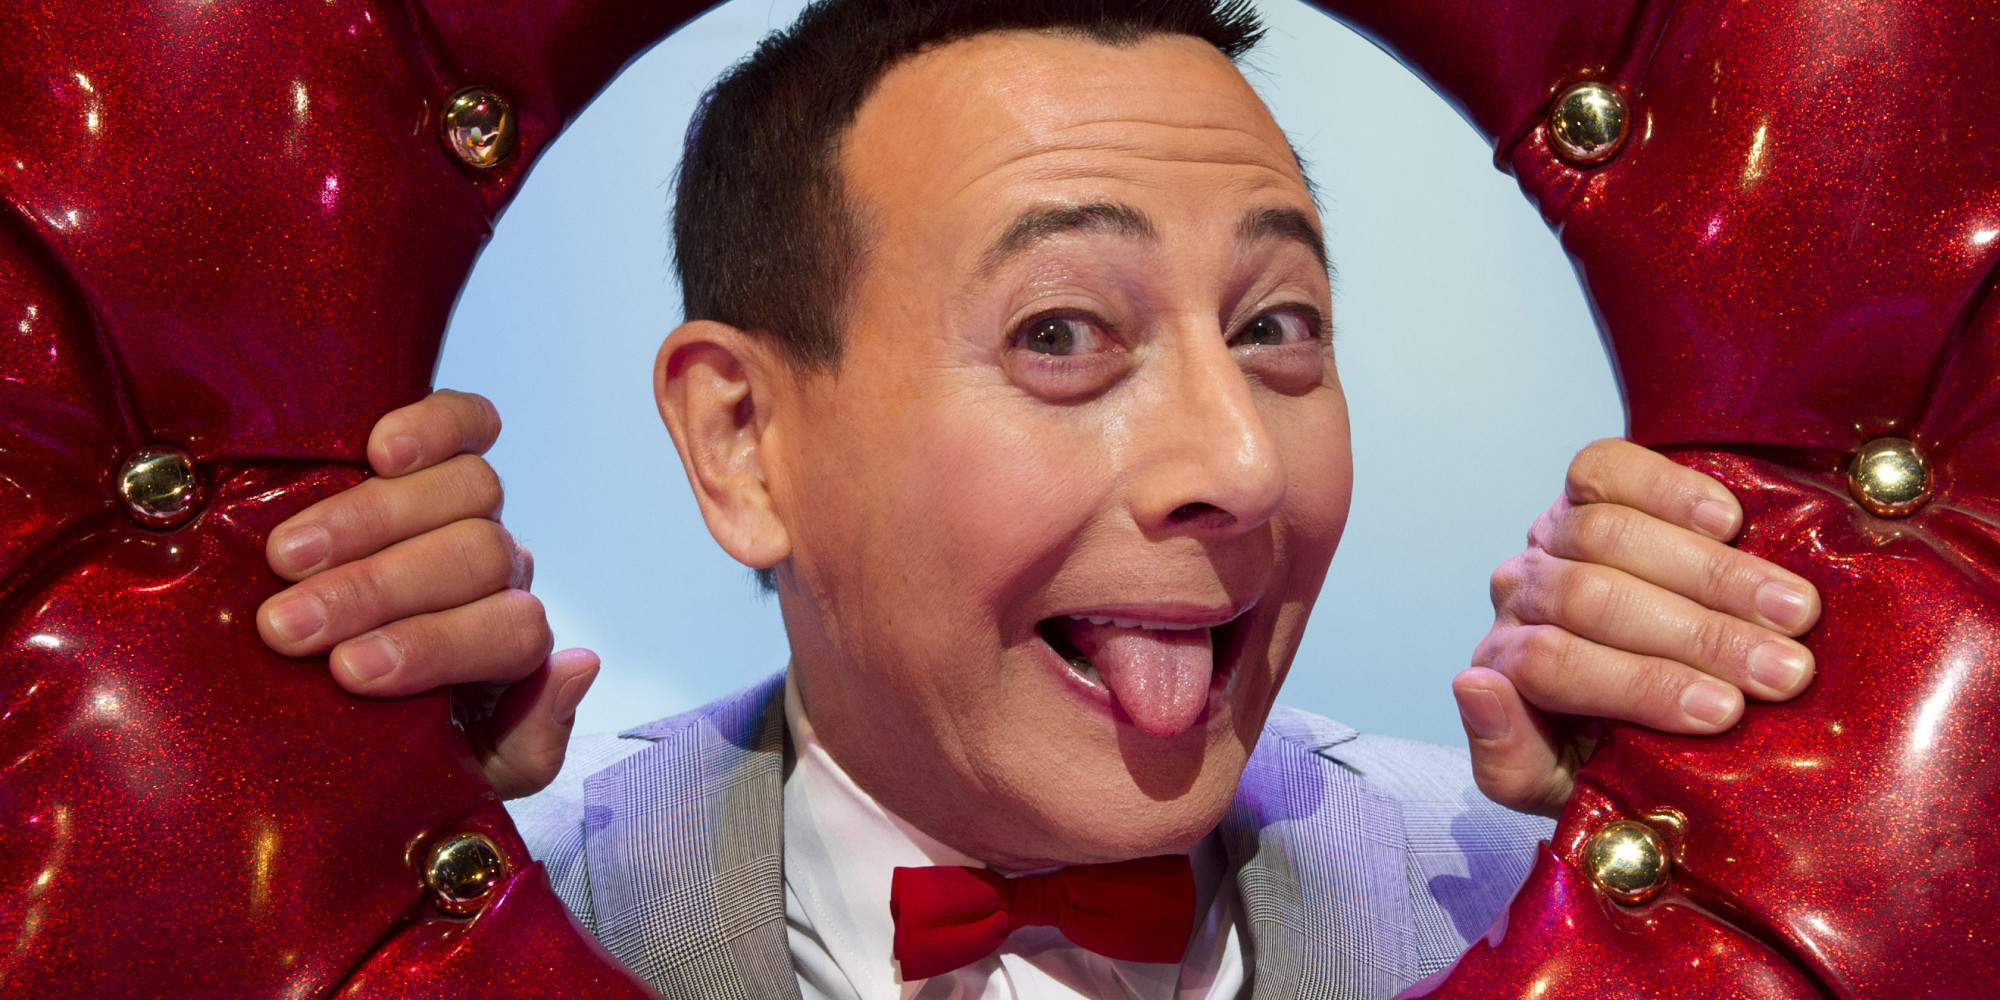 PEE-WEE'S BIG HOLIDAY TO BE A HARD R